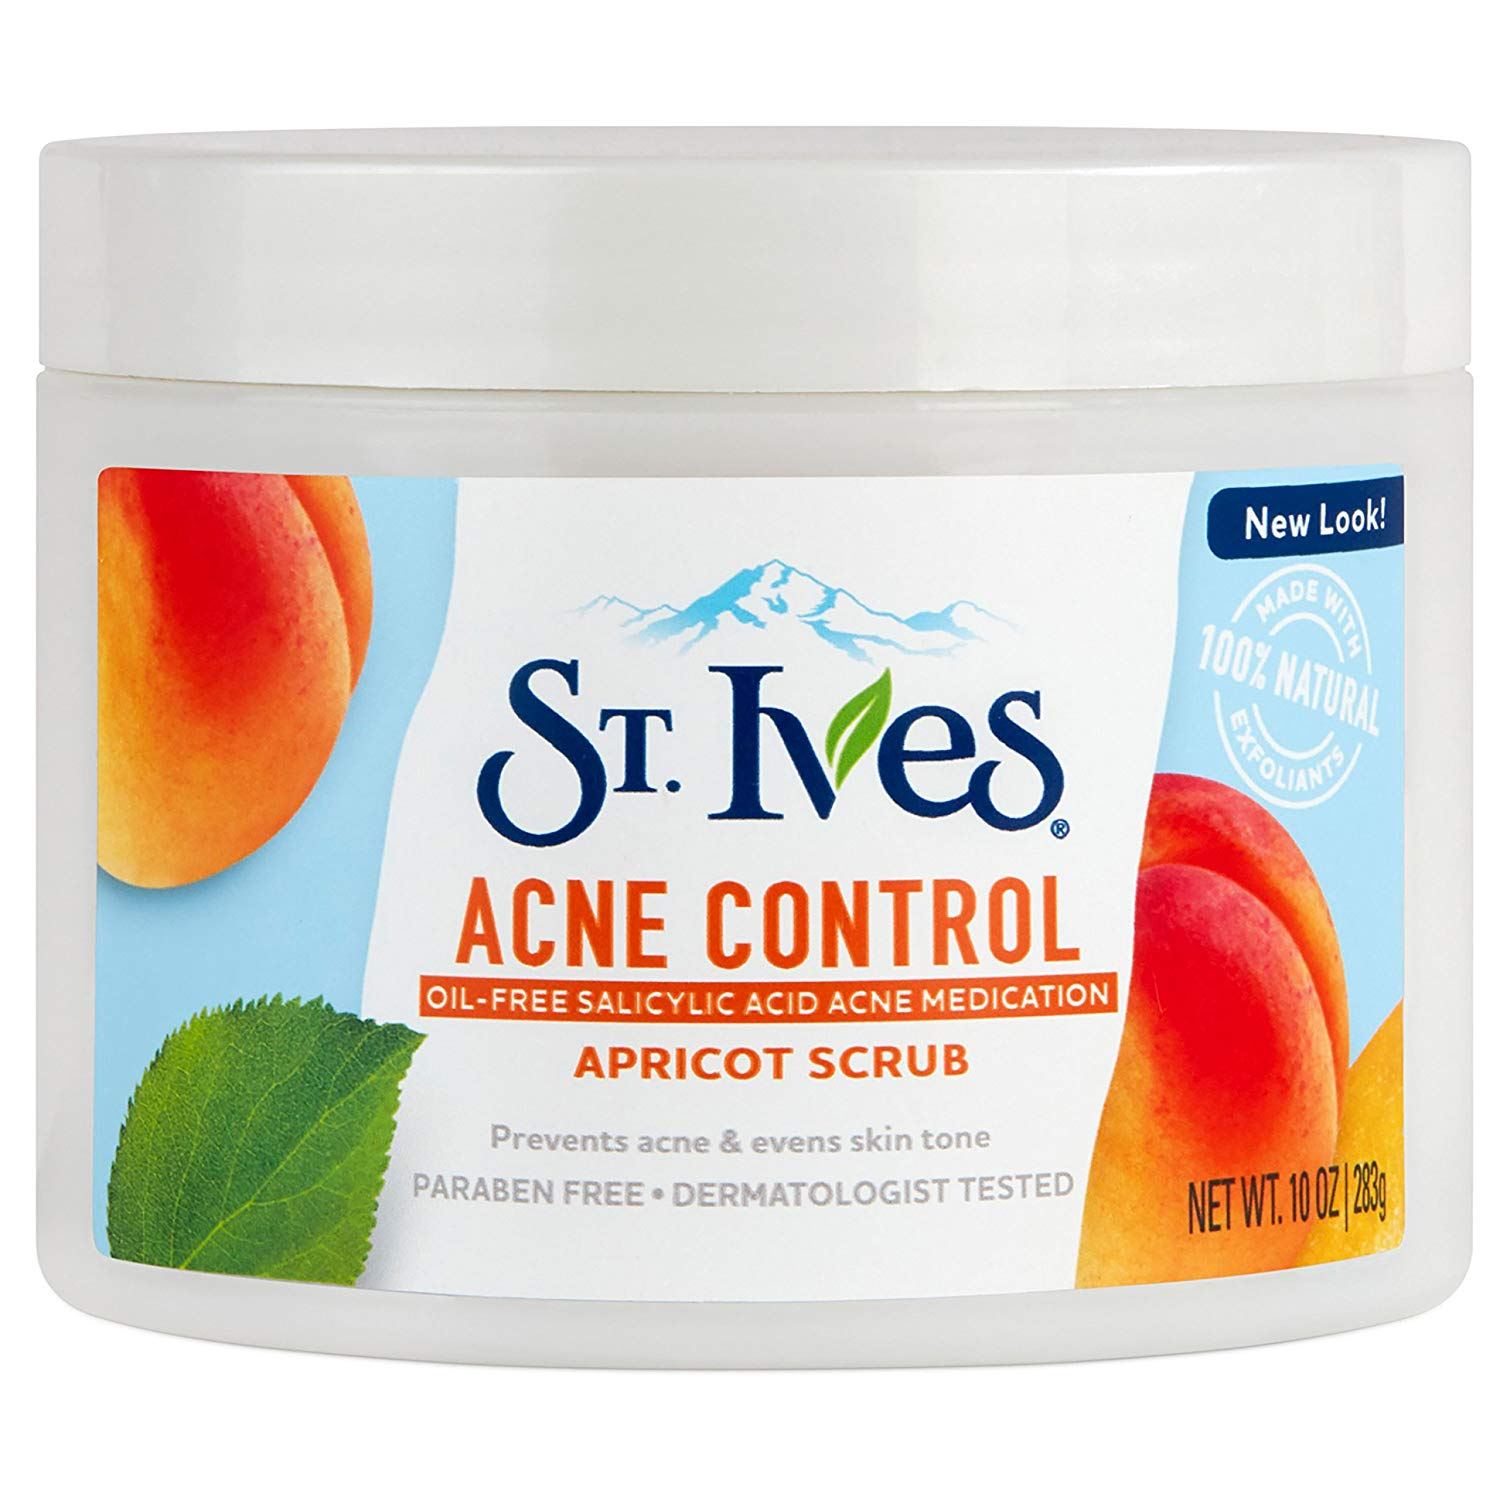 St. Ives Acne Control Apricot Scrub, 283g